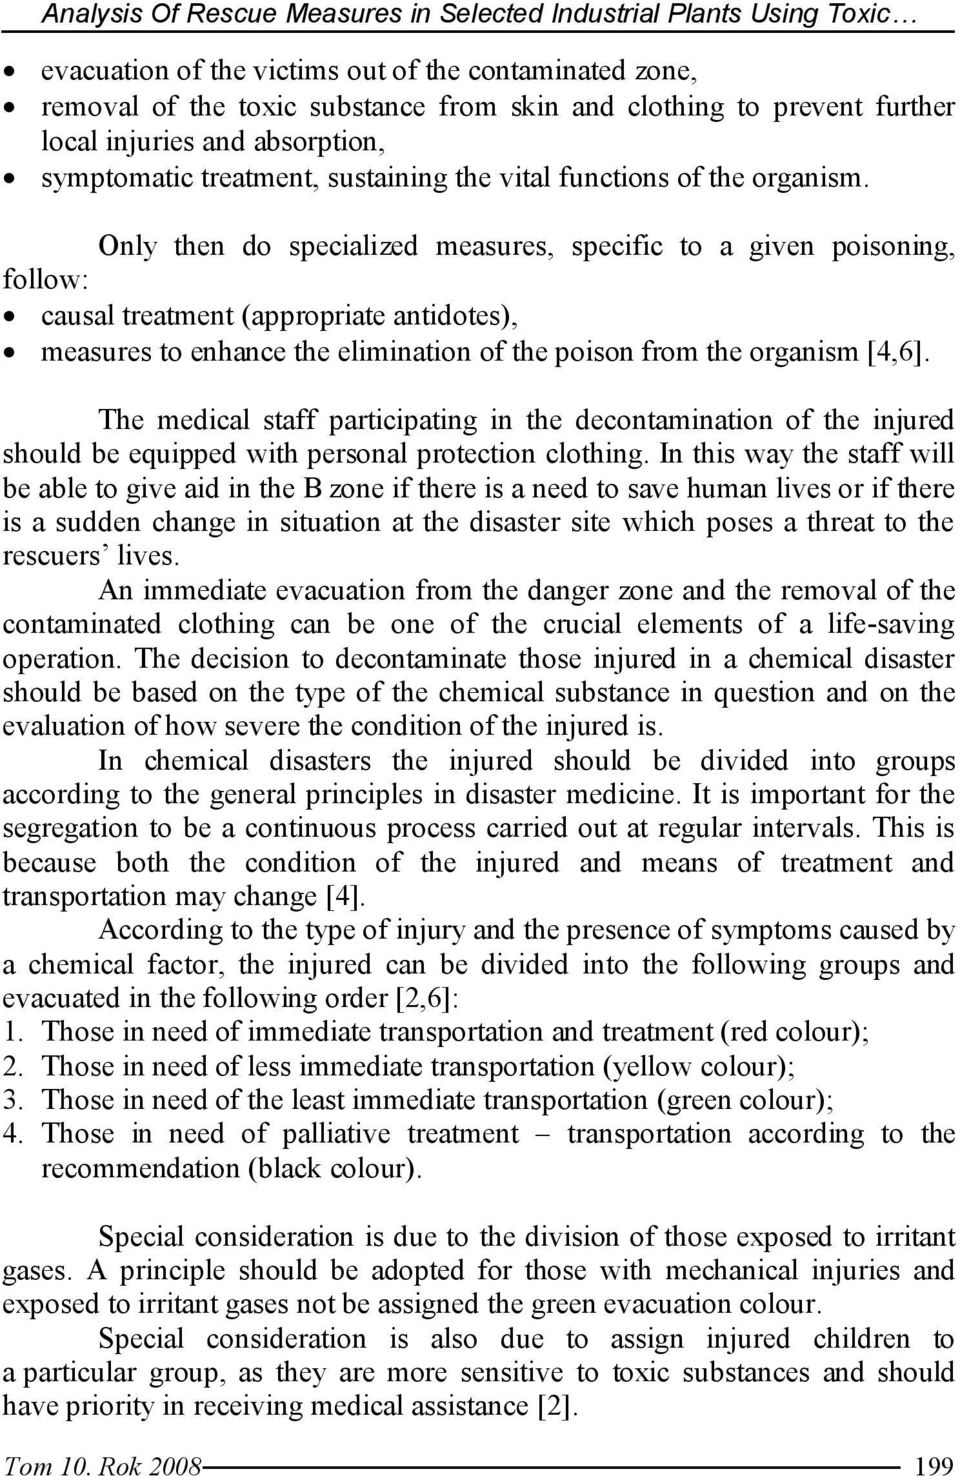 Only then do specialized measures, specific to a given poisoning, follow: causal treatment (appropriate antidotes), measures to enhance the elimination of the poison from the organism [4,6].